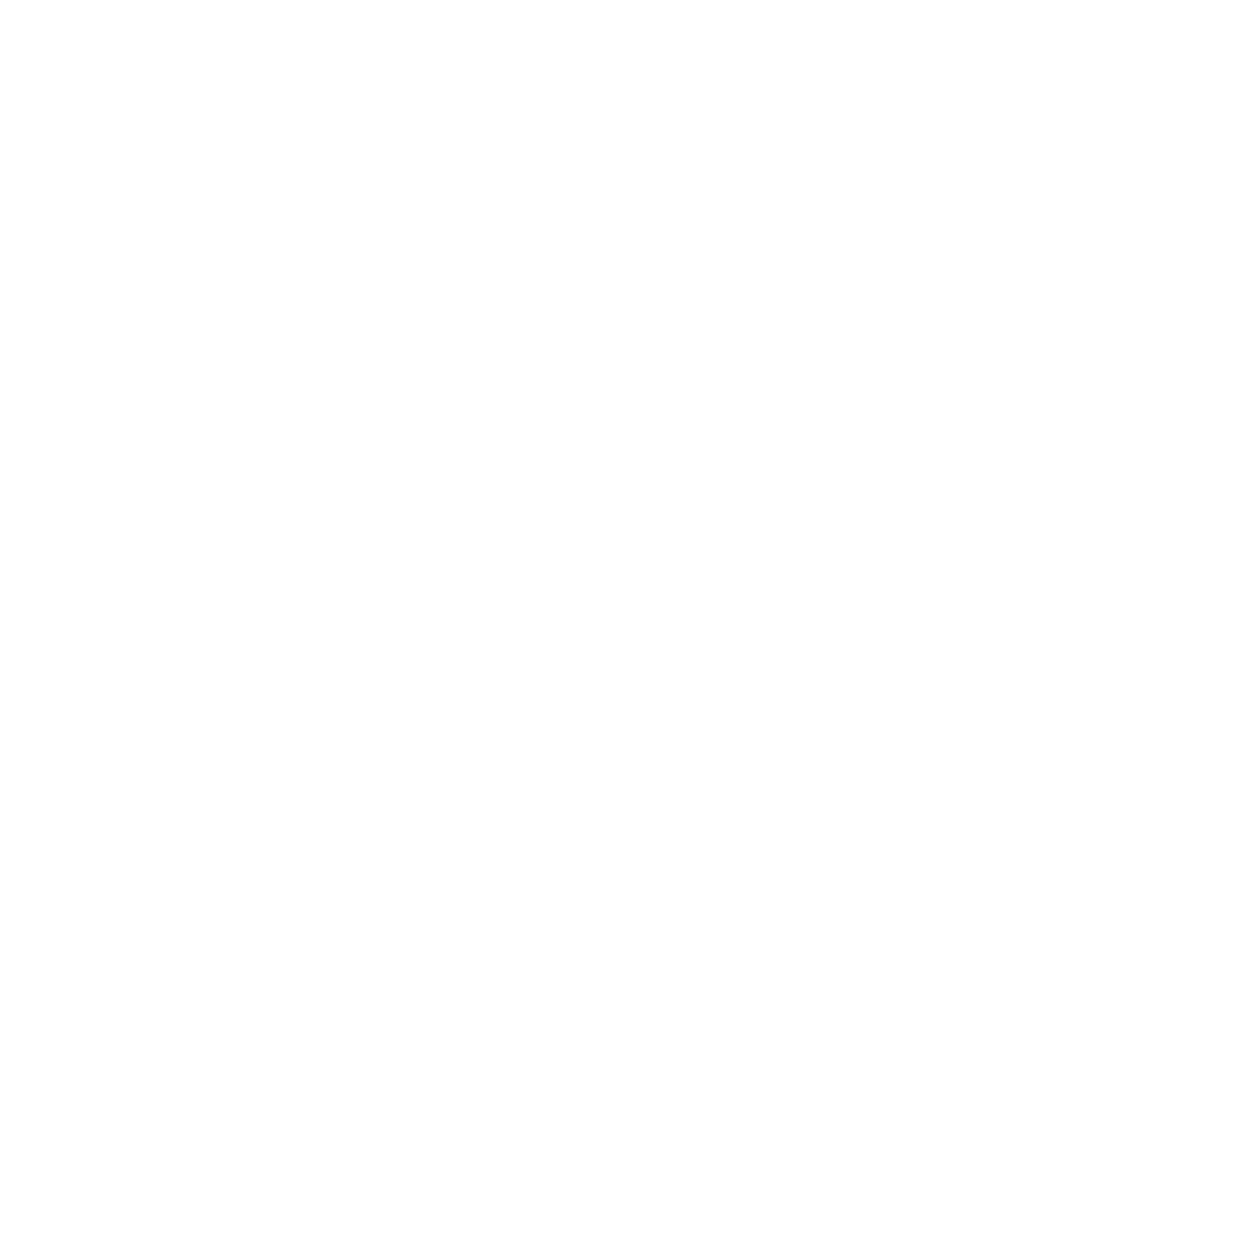 aths.coach Athletics Coach